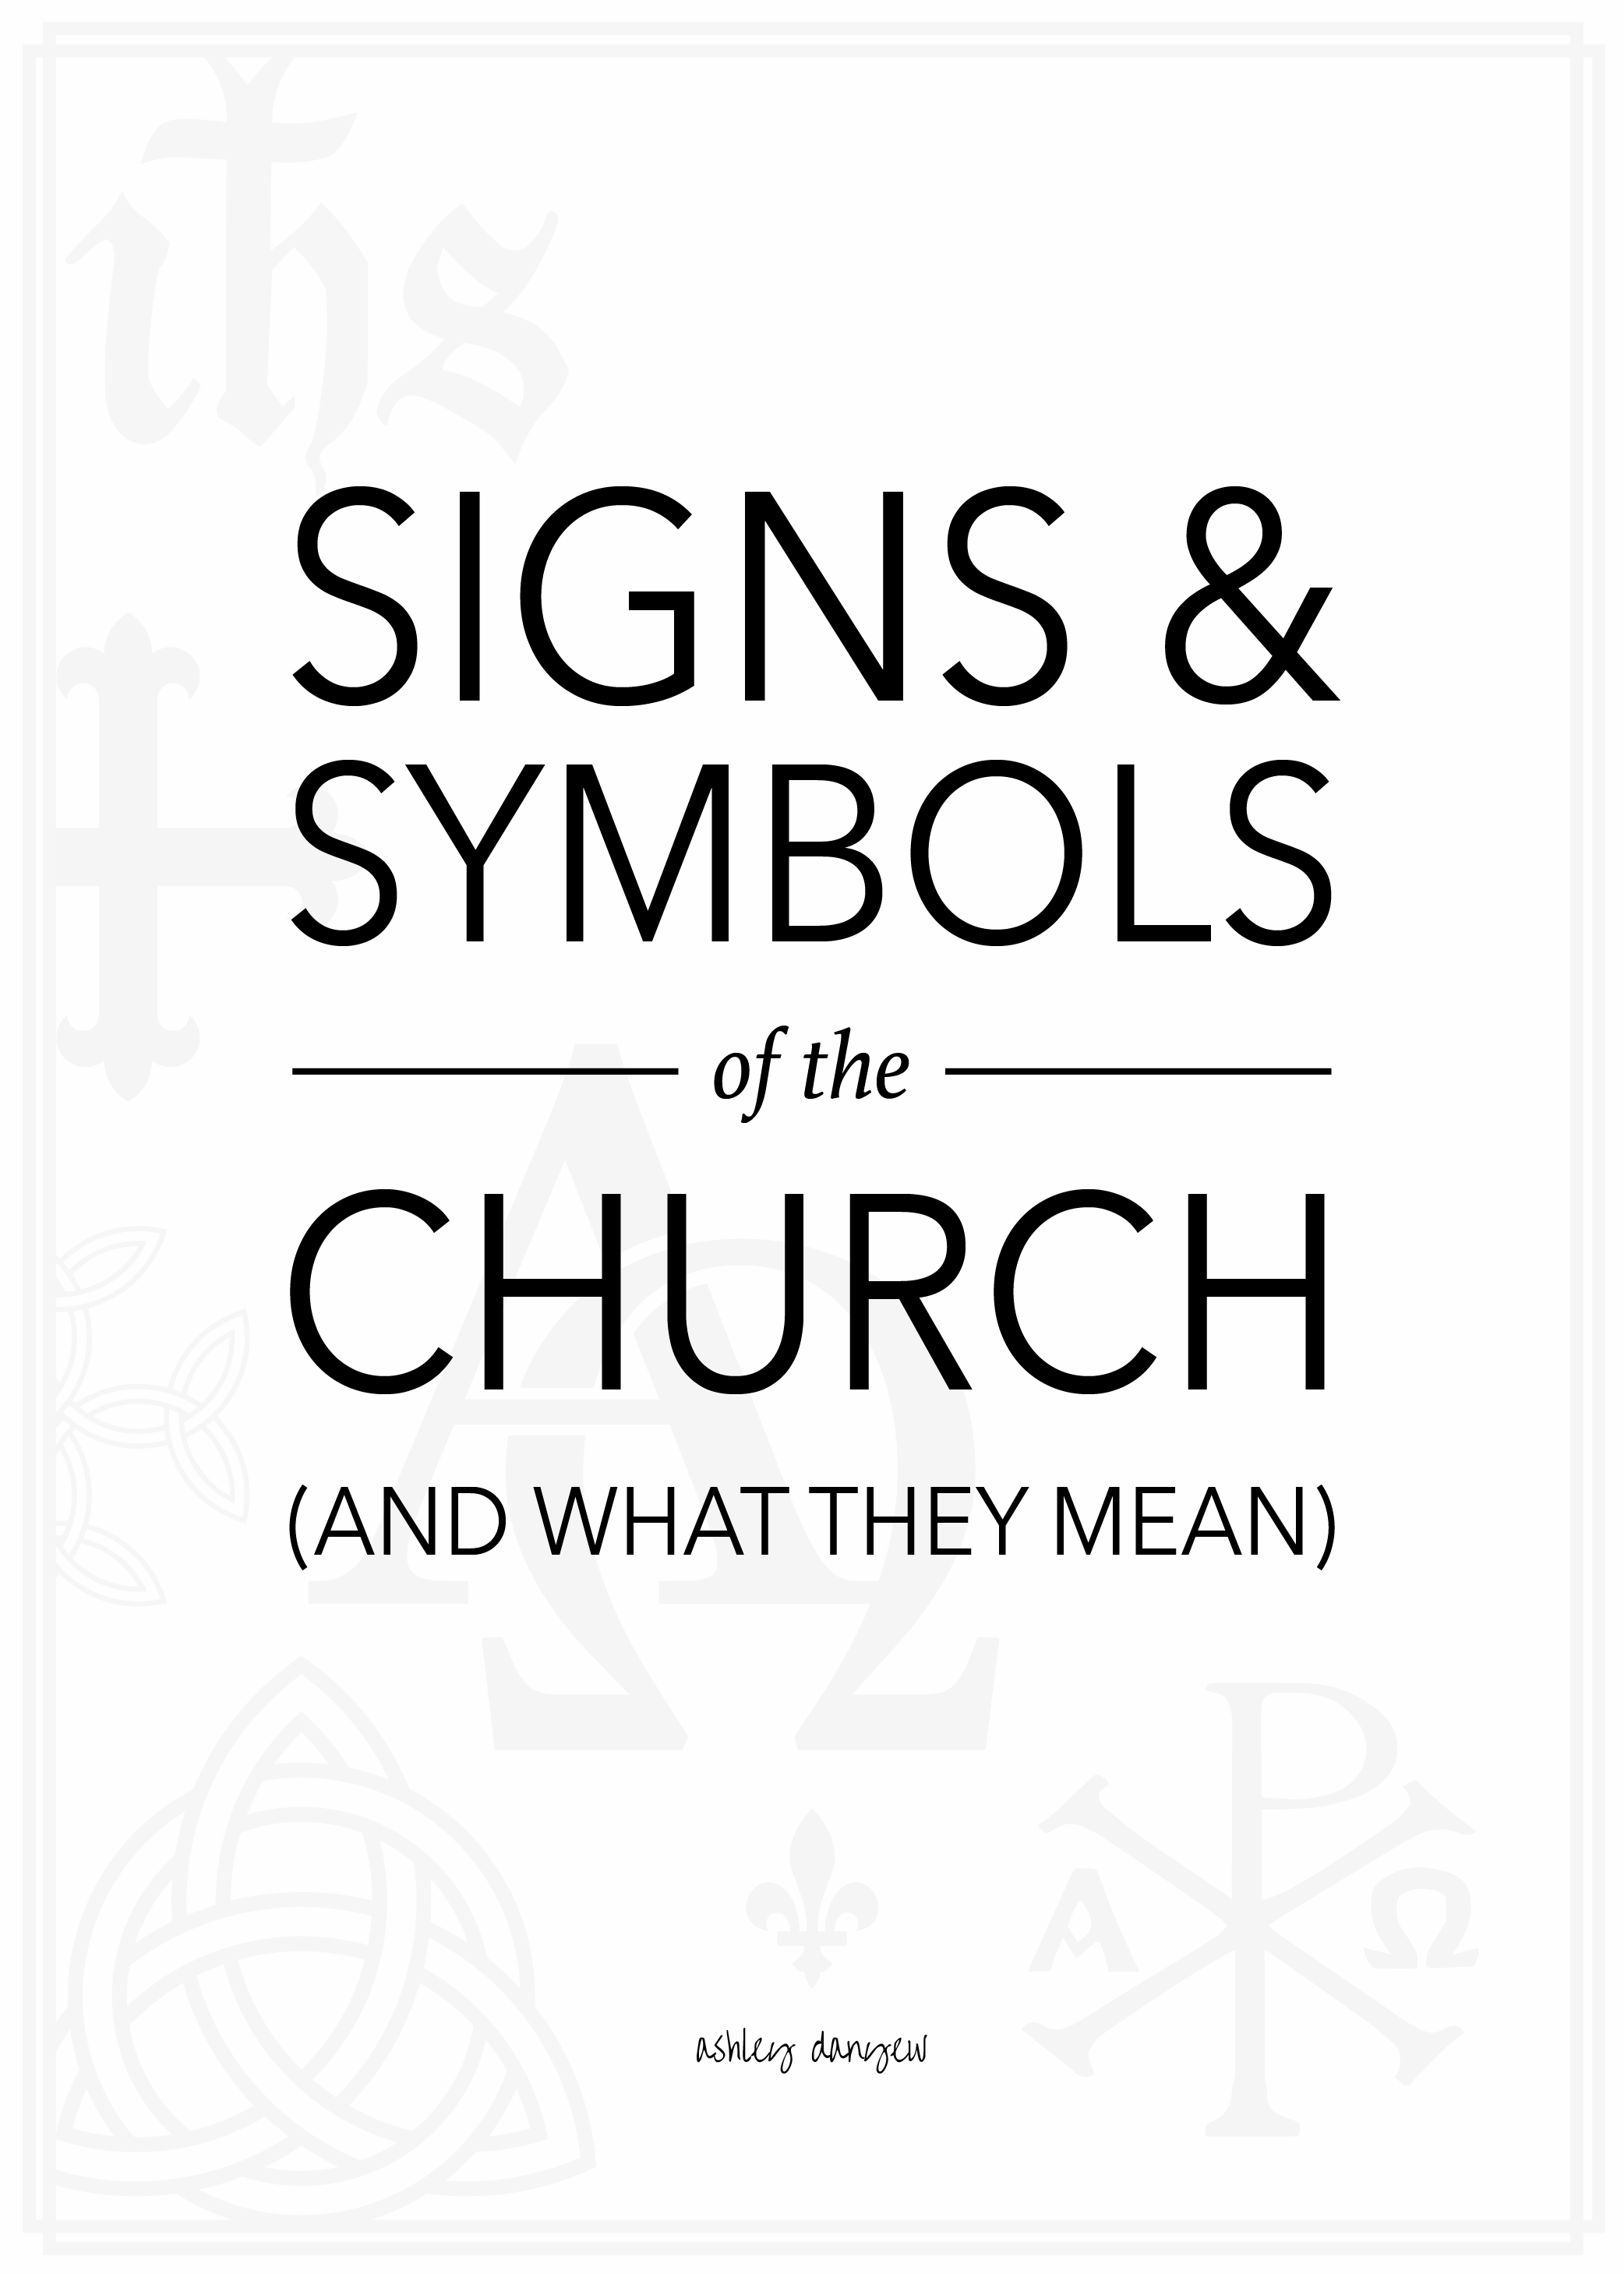 Copy of Signs & Symbols of the Church (and What They Mean)